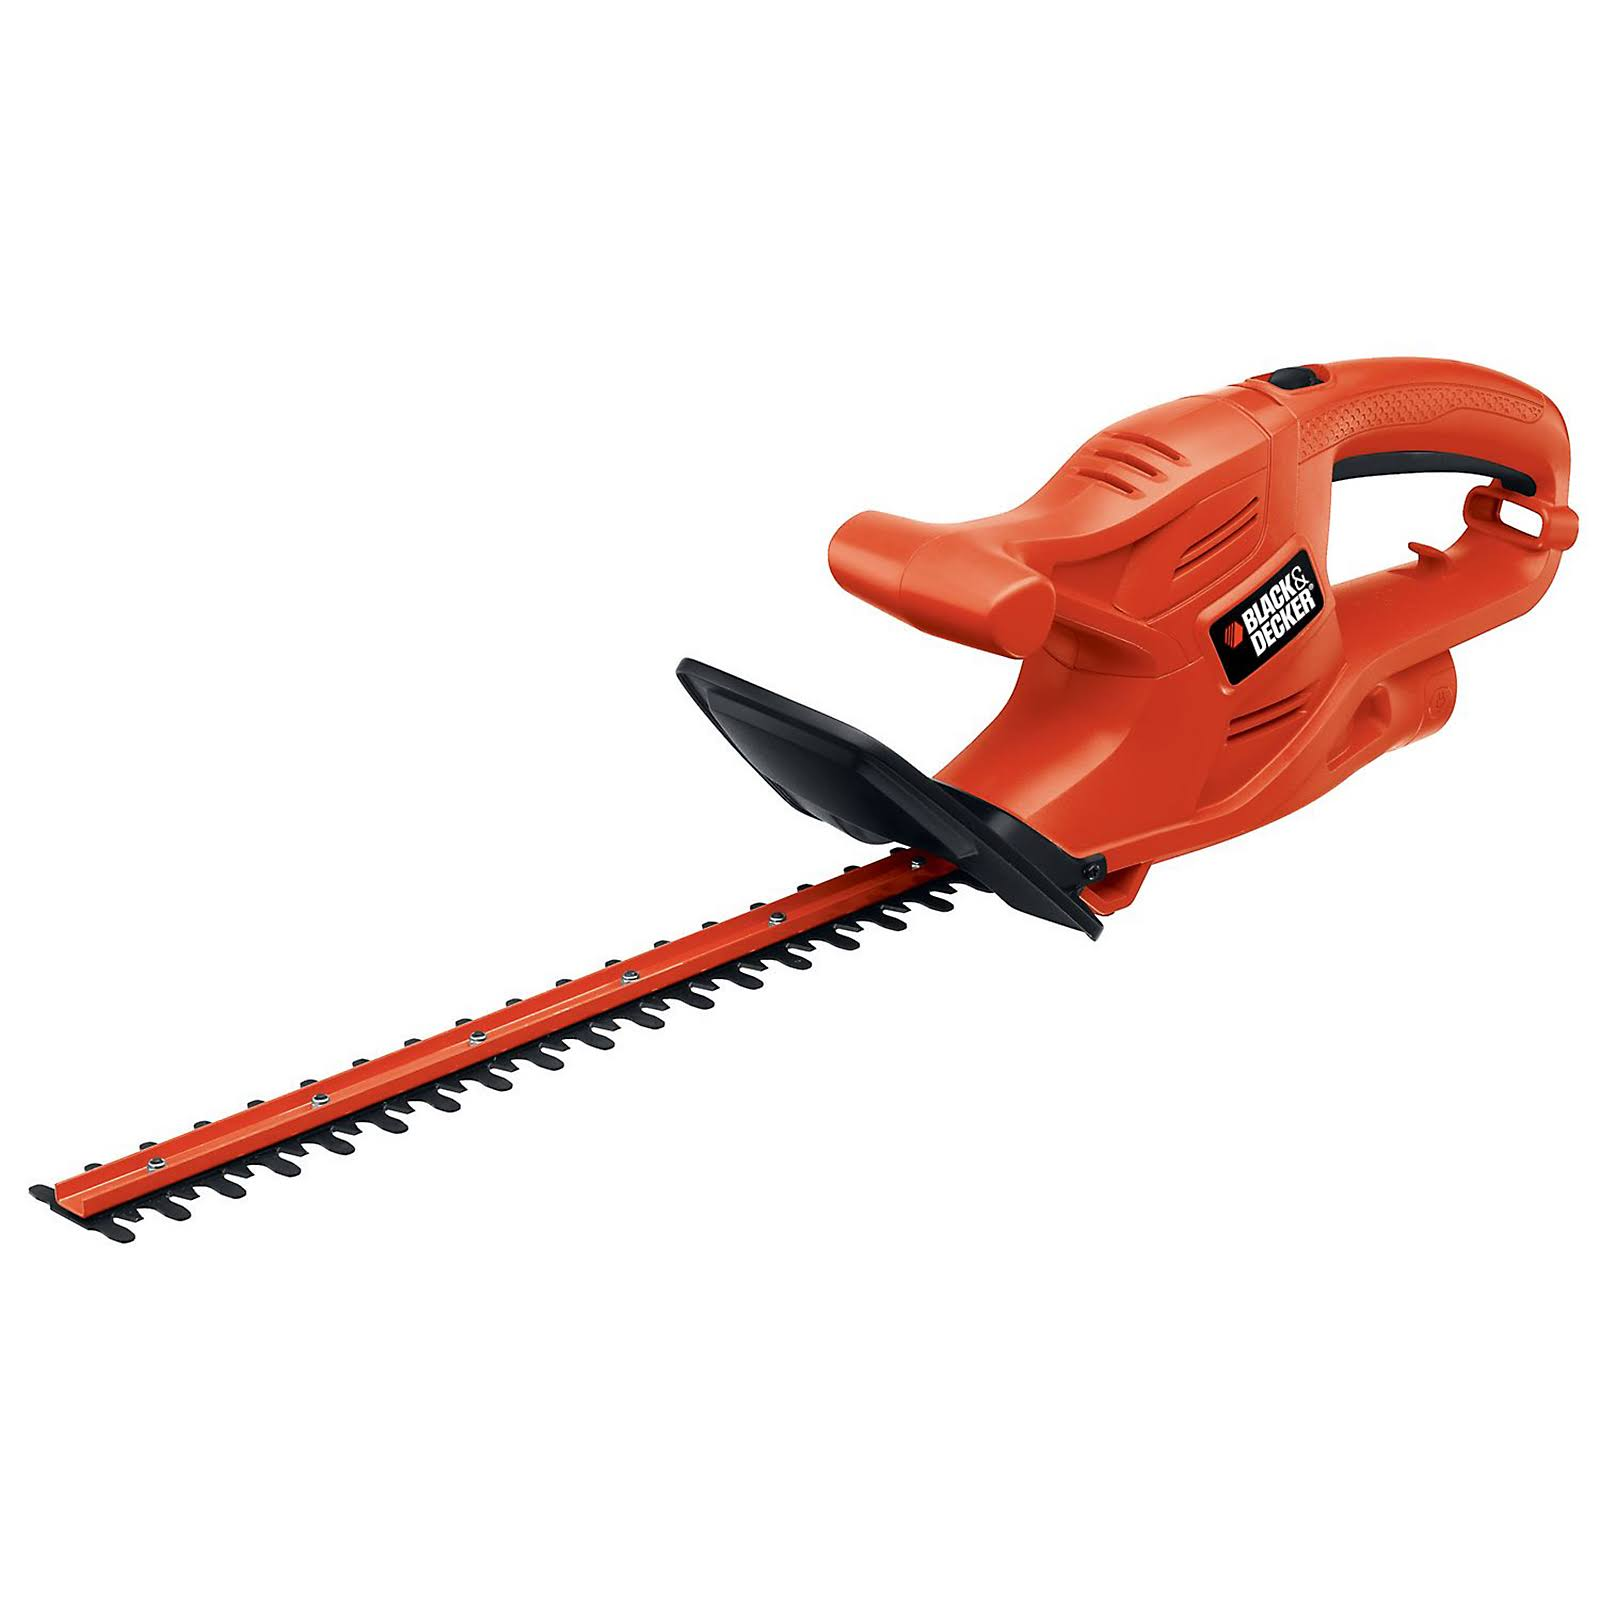 Black & Decker 3 Amp Hedge Trimmer - 16in